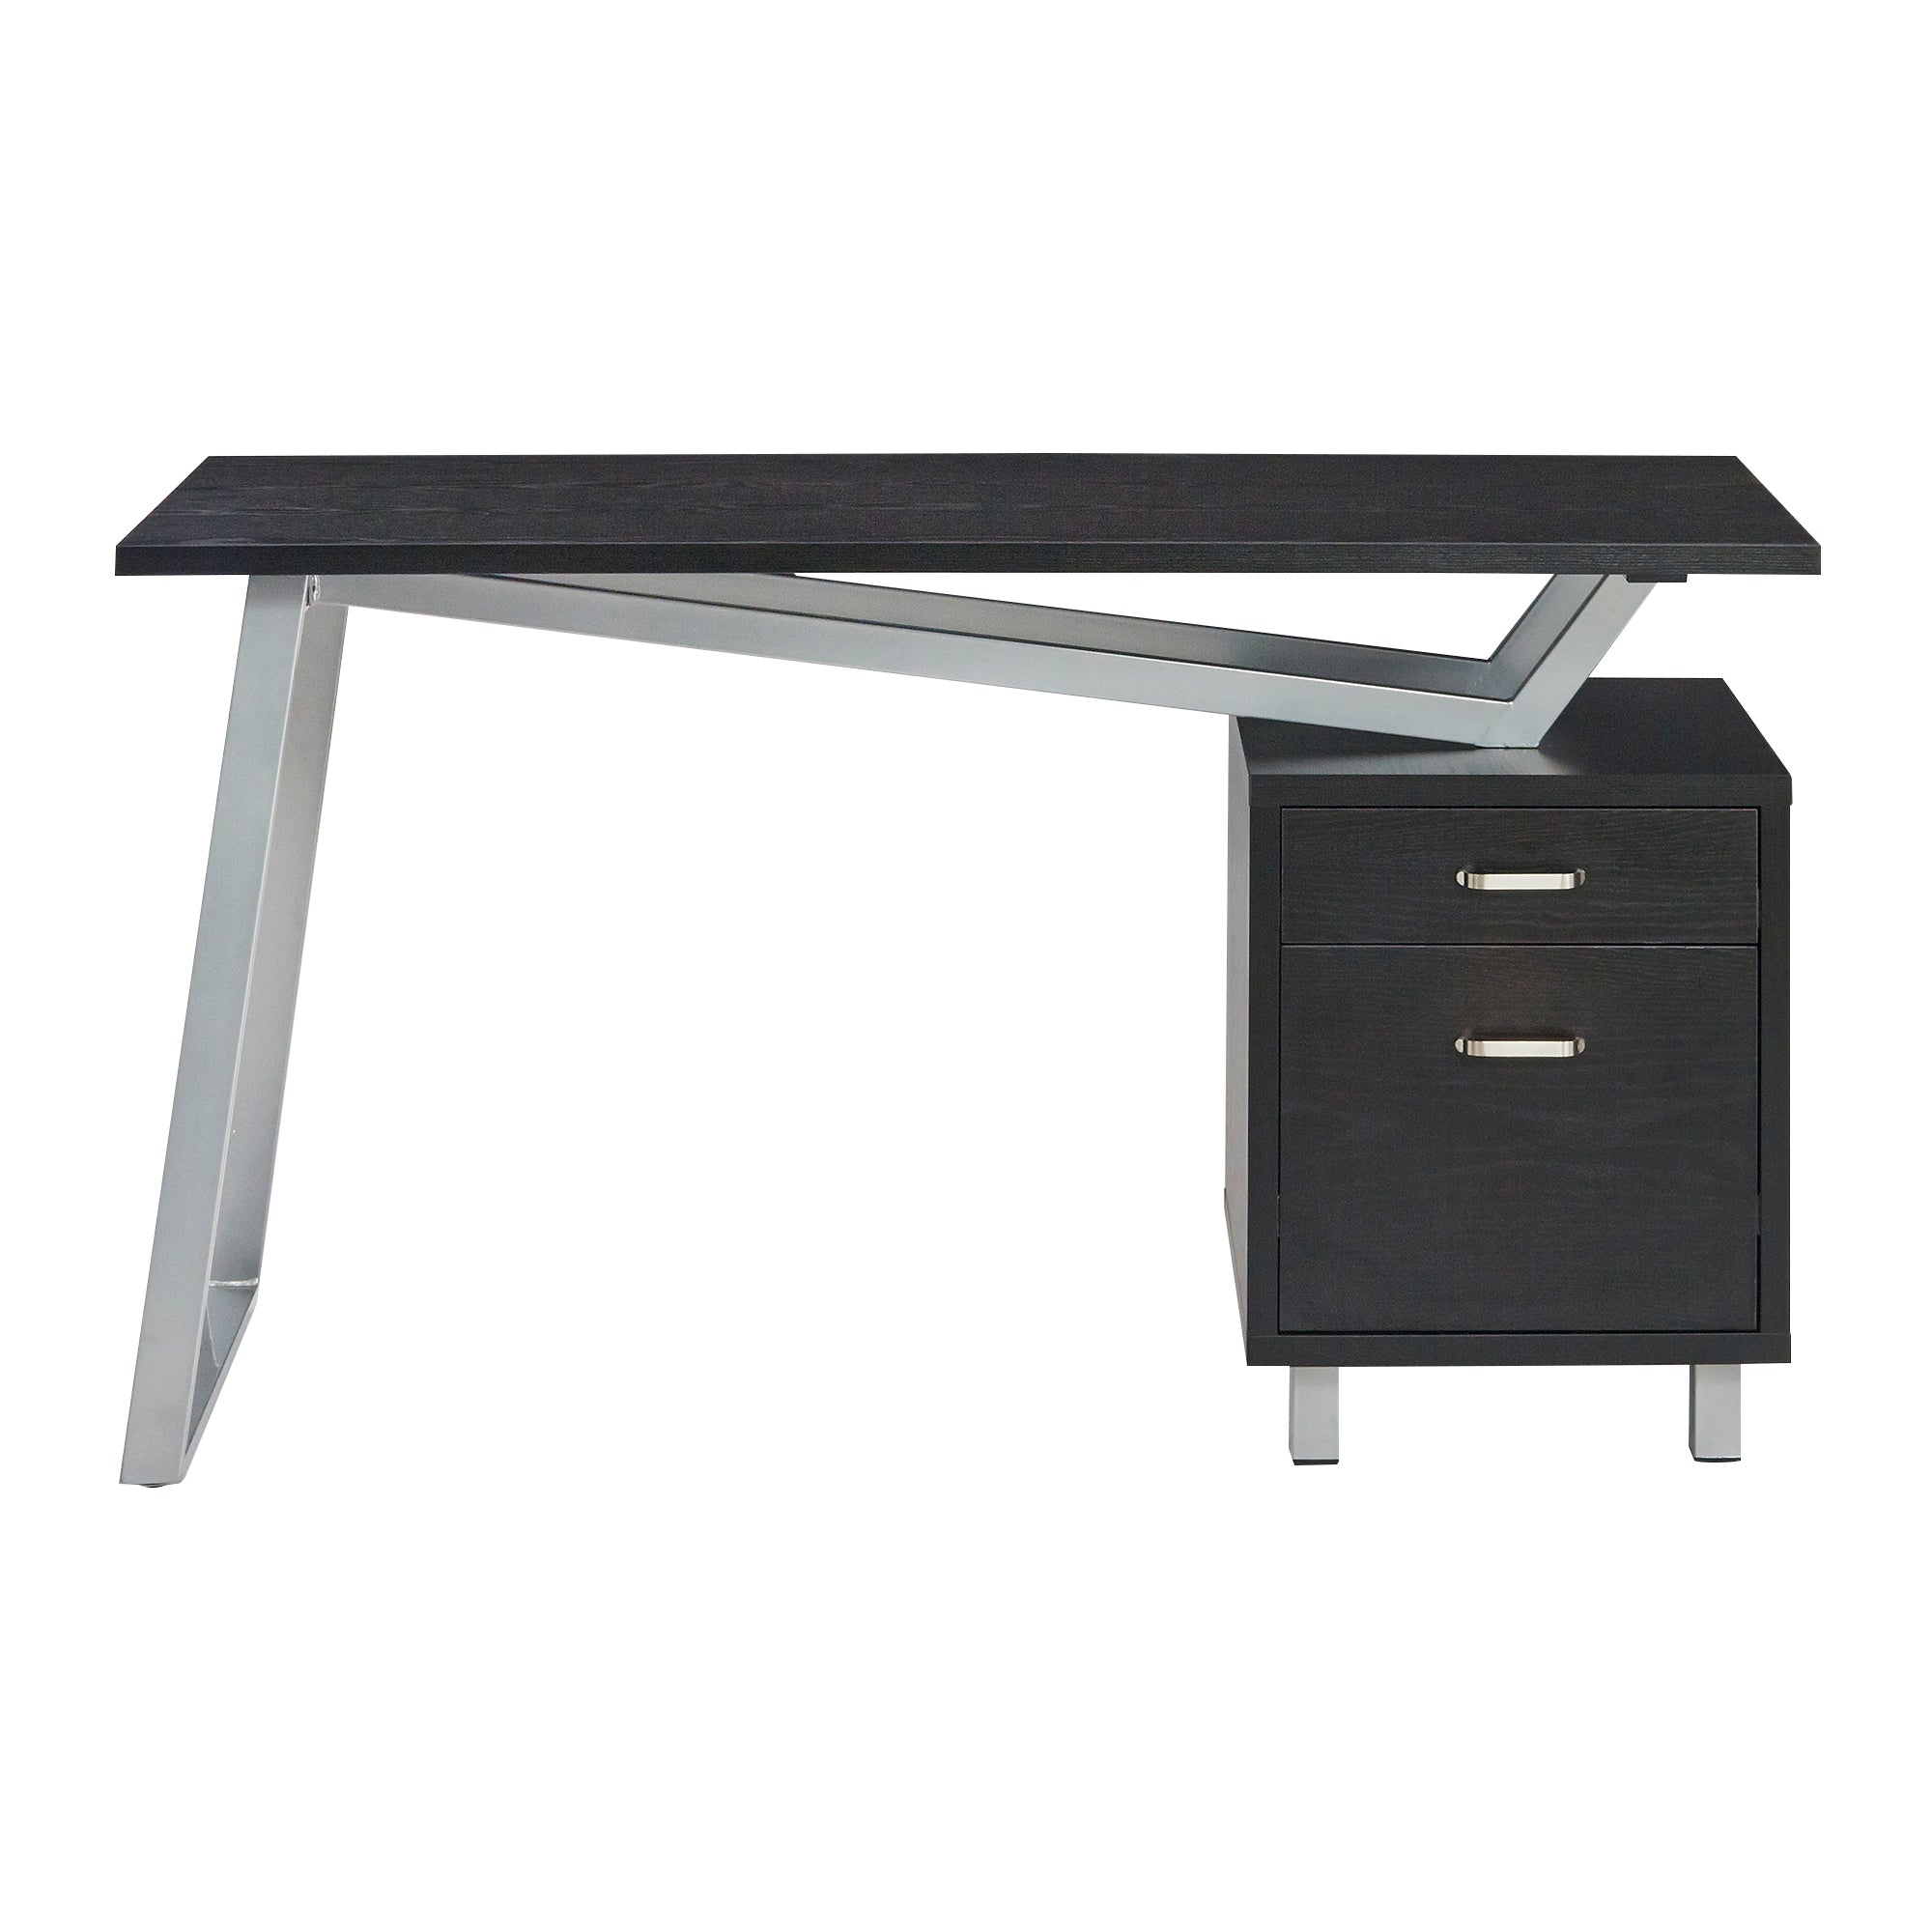 Stylish V-Desk in Black with Wood Top and Drawers